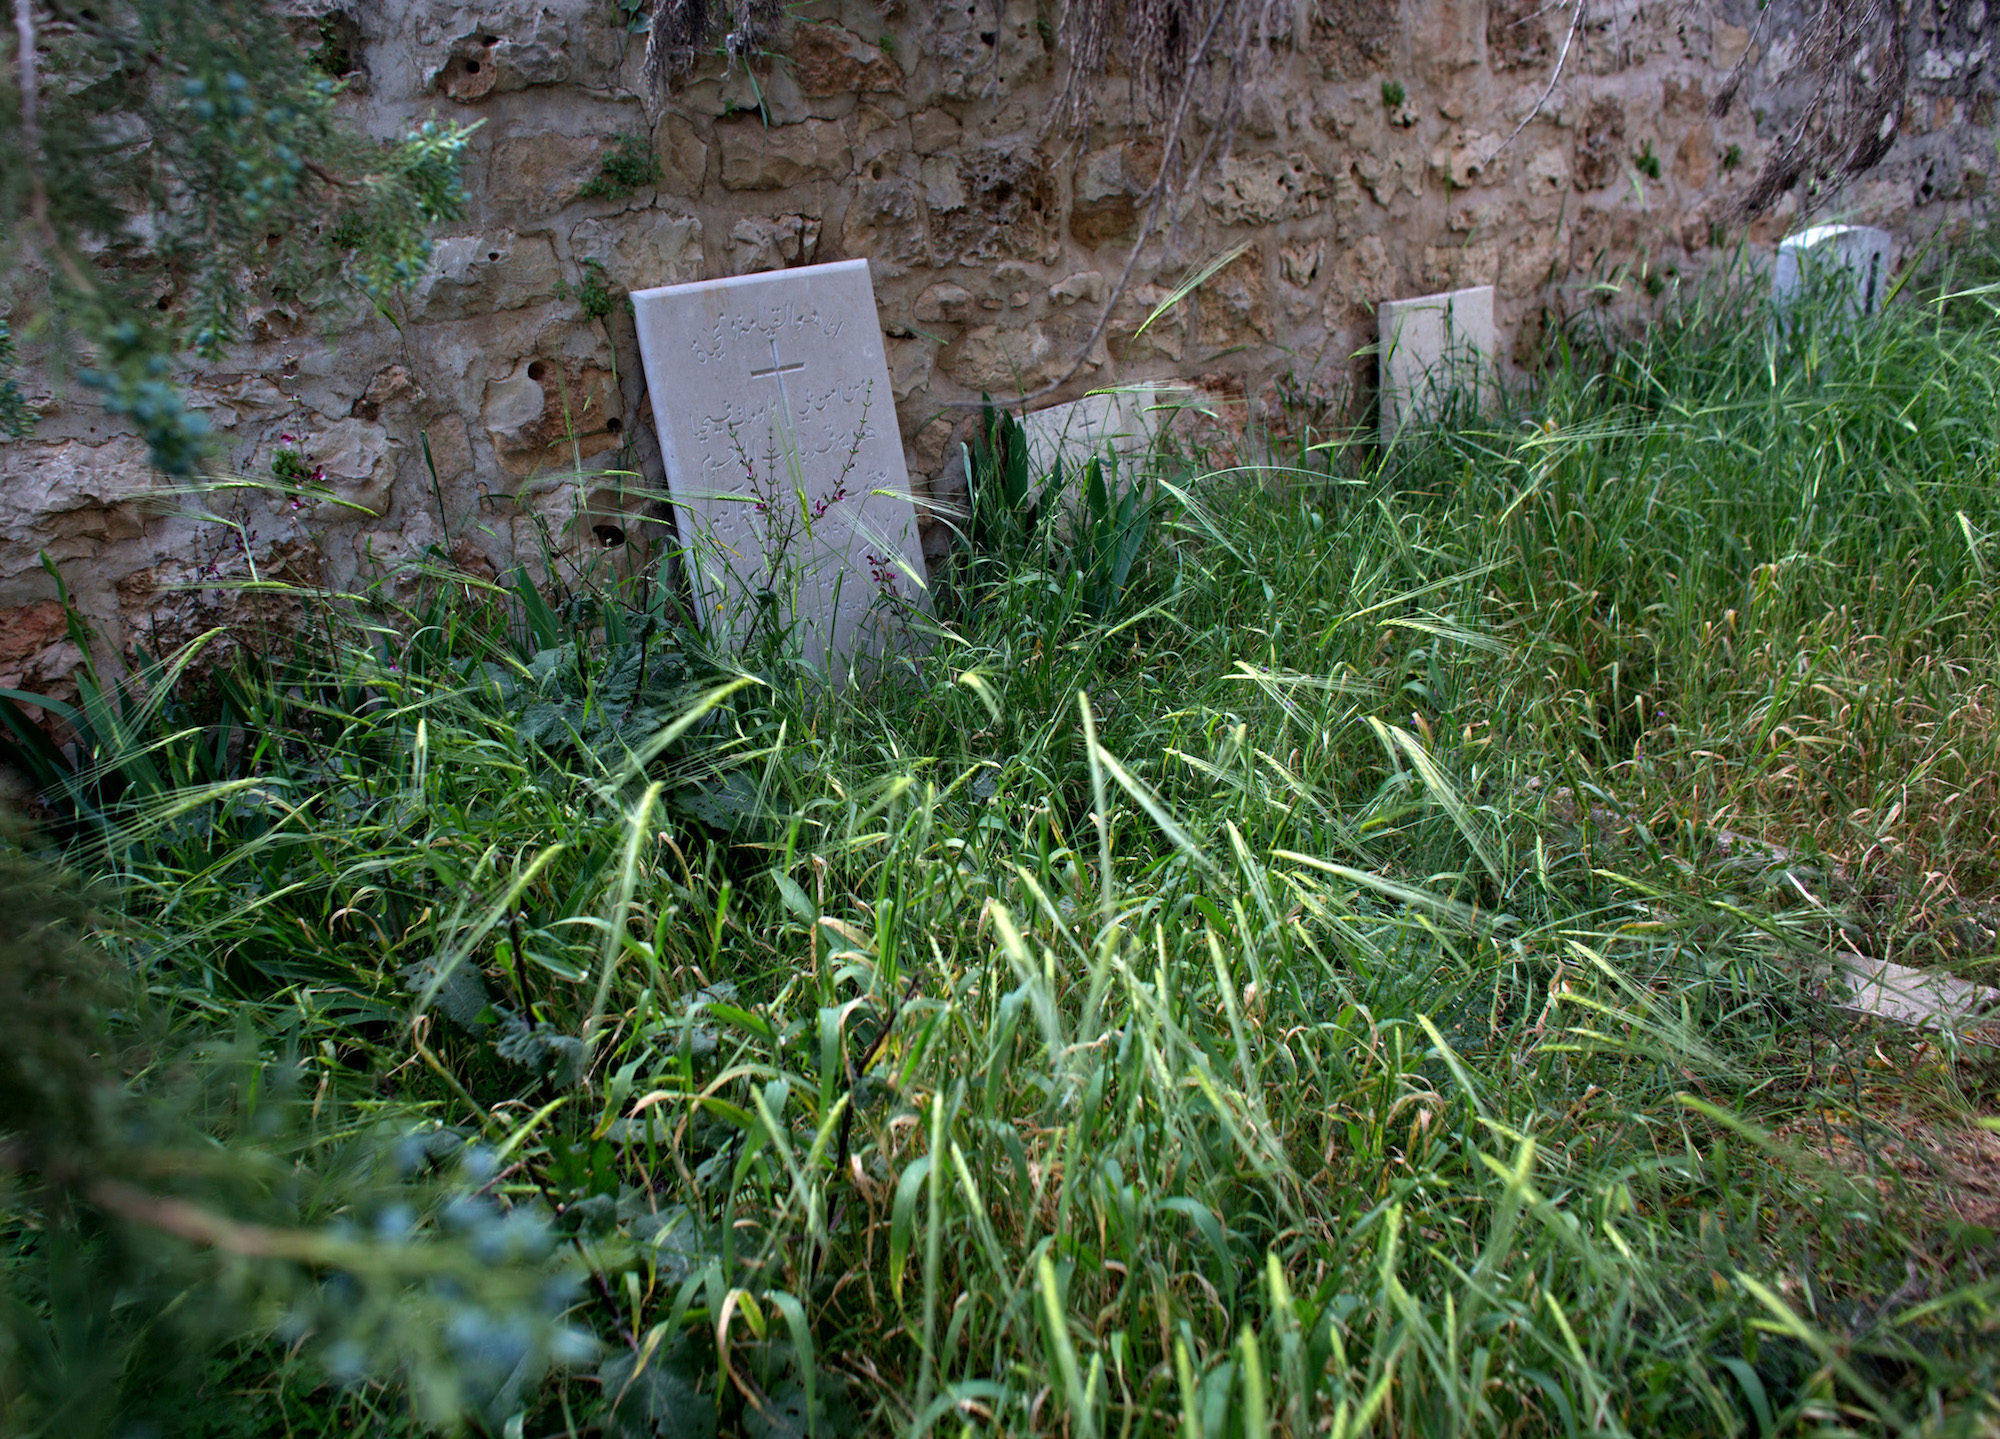 Christian tombstones are seen in a neglected Christian cemetery in the West Bank village of El Qubeibeh, also known as Emmaus. (Photo by Heidi Levine/GroundTruth)